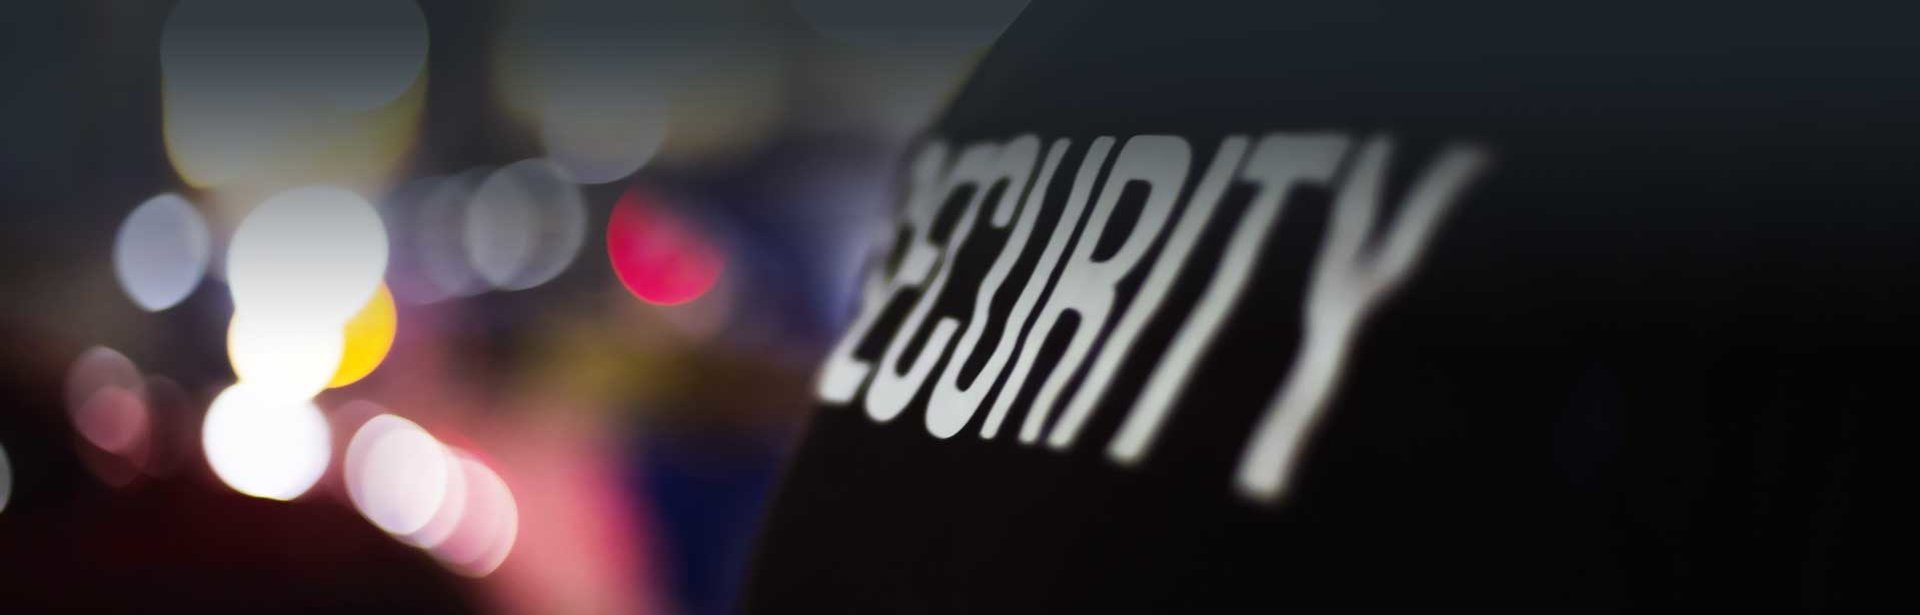 Stylized close up of a vest with 'Security' written upon it.